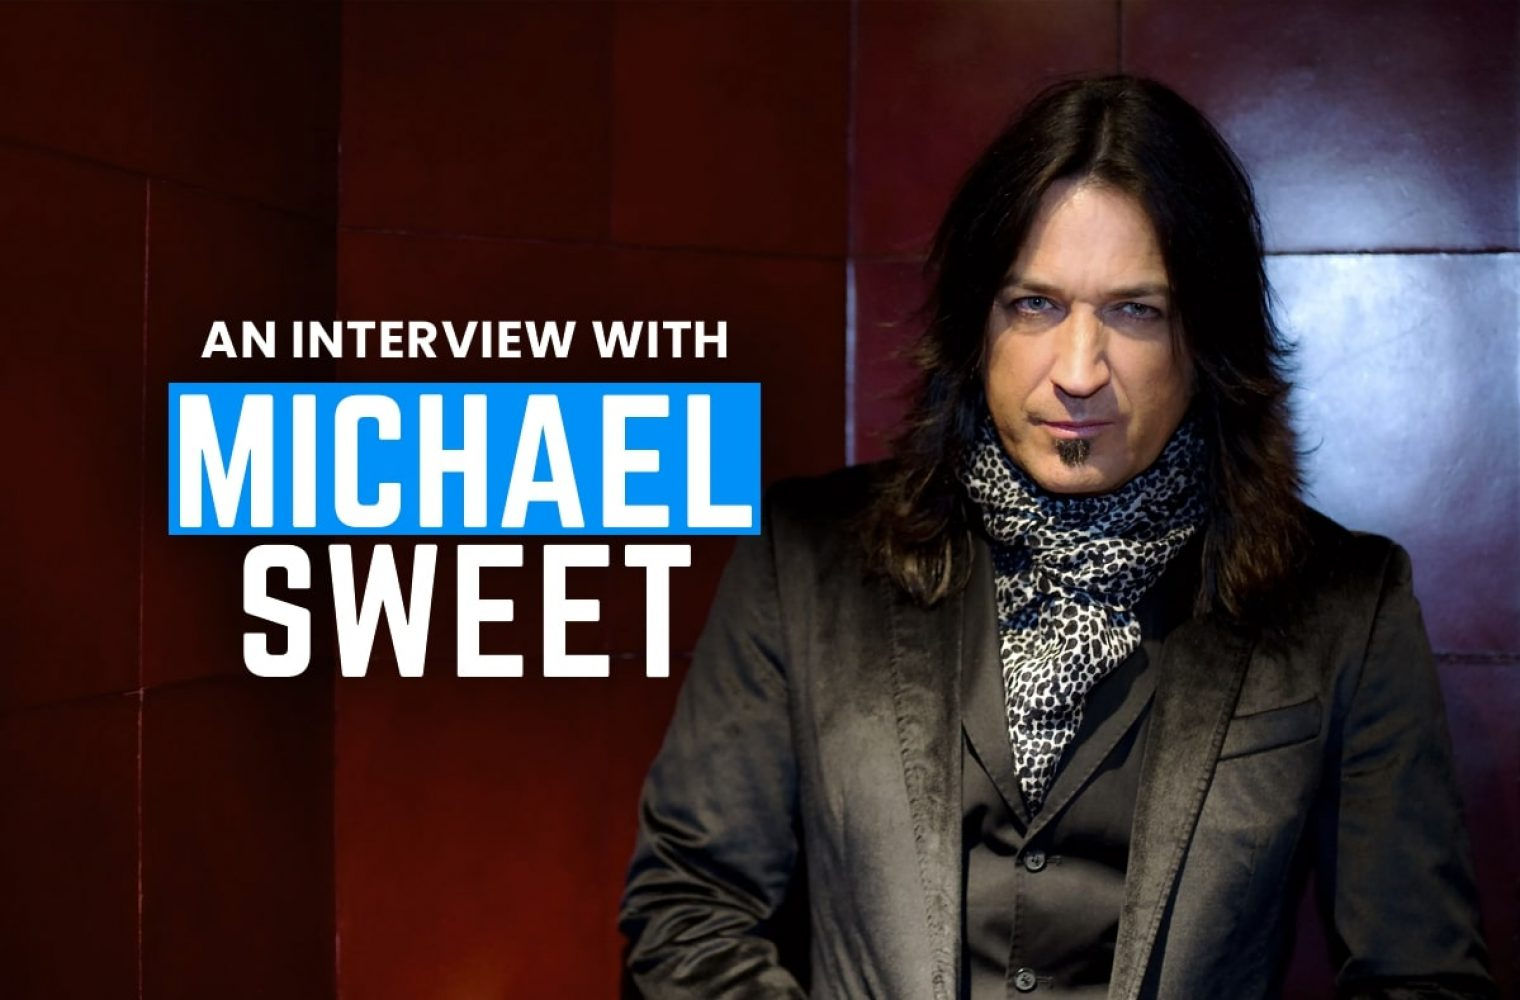 An Interview With Michael Sweet